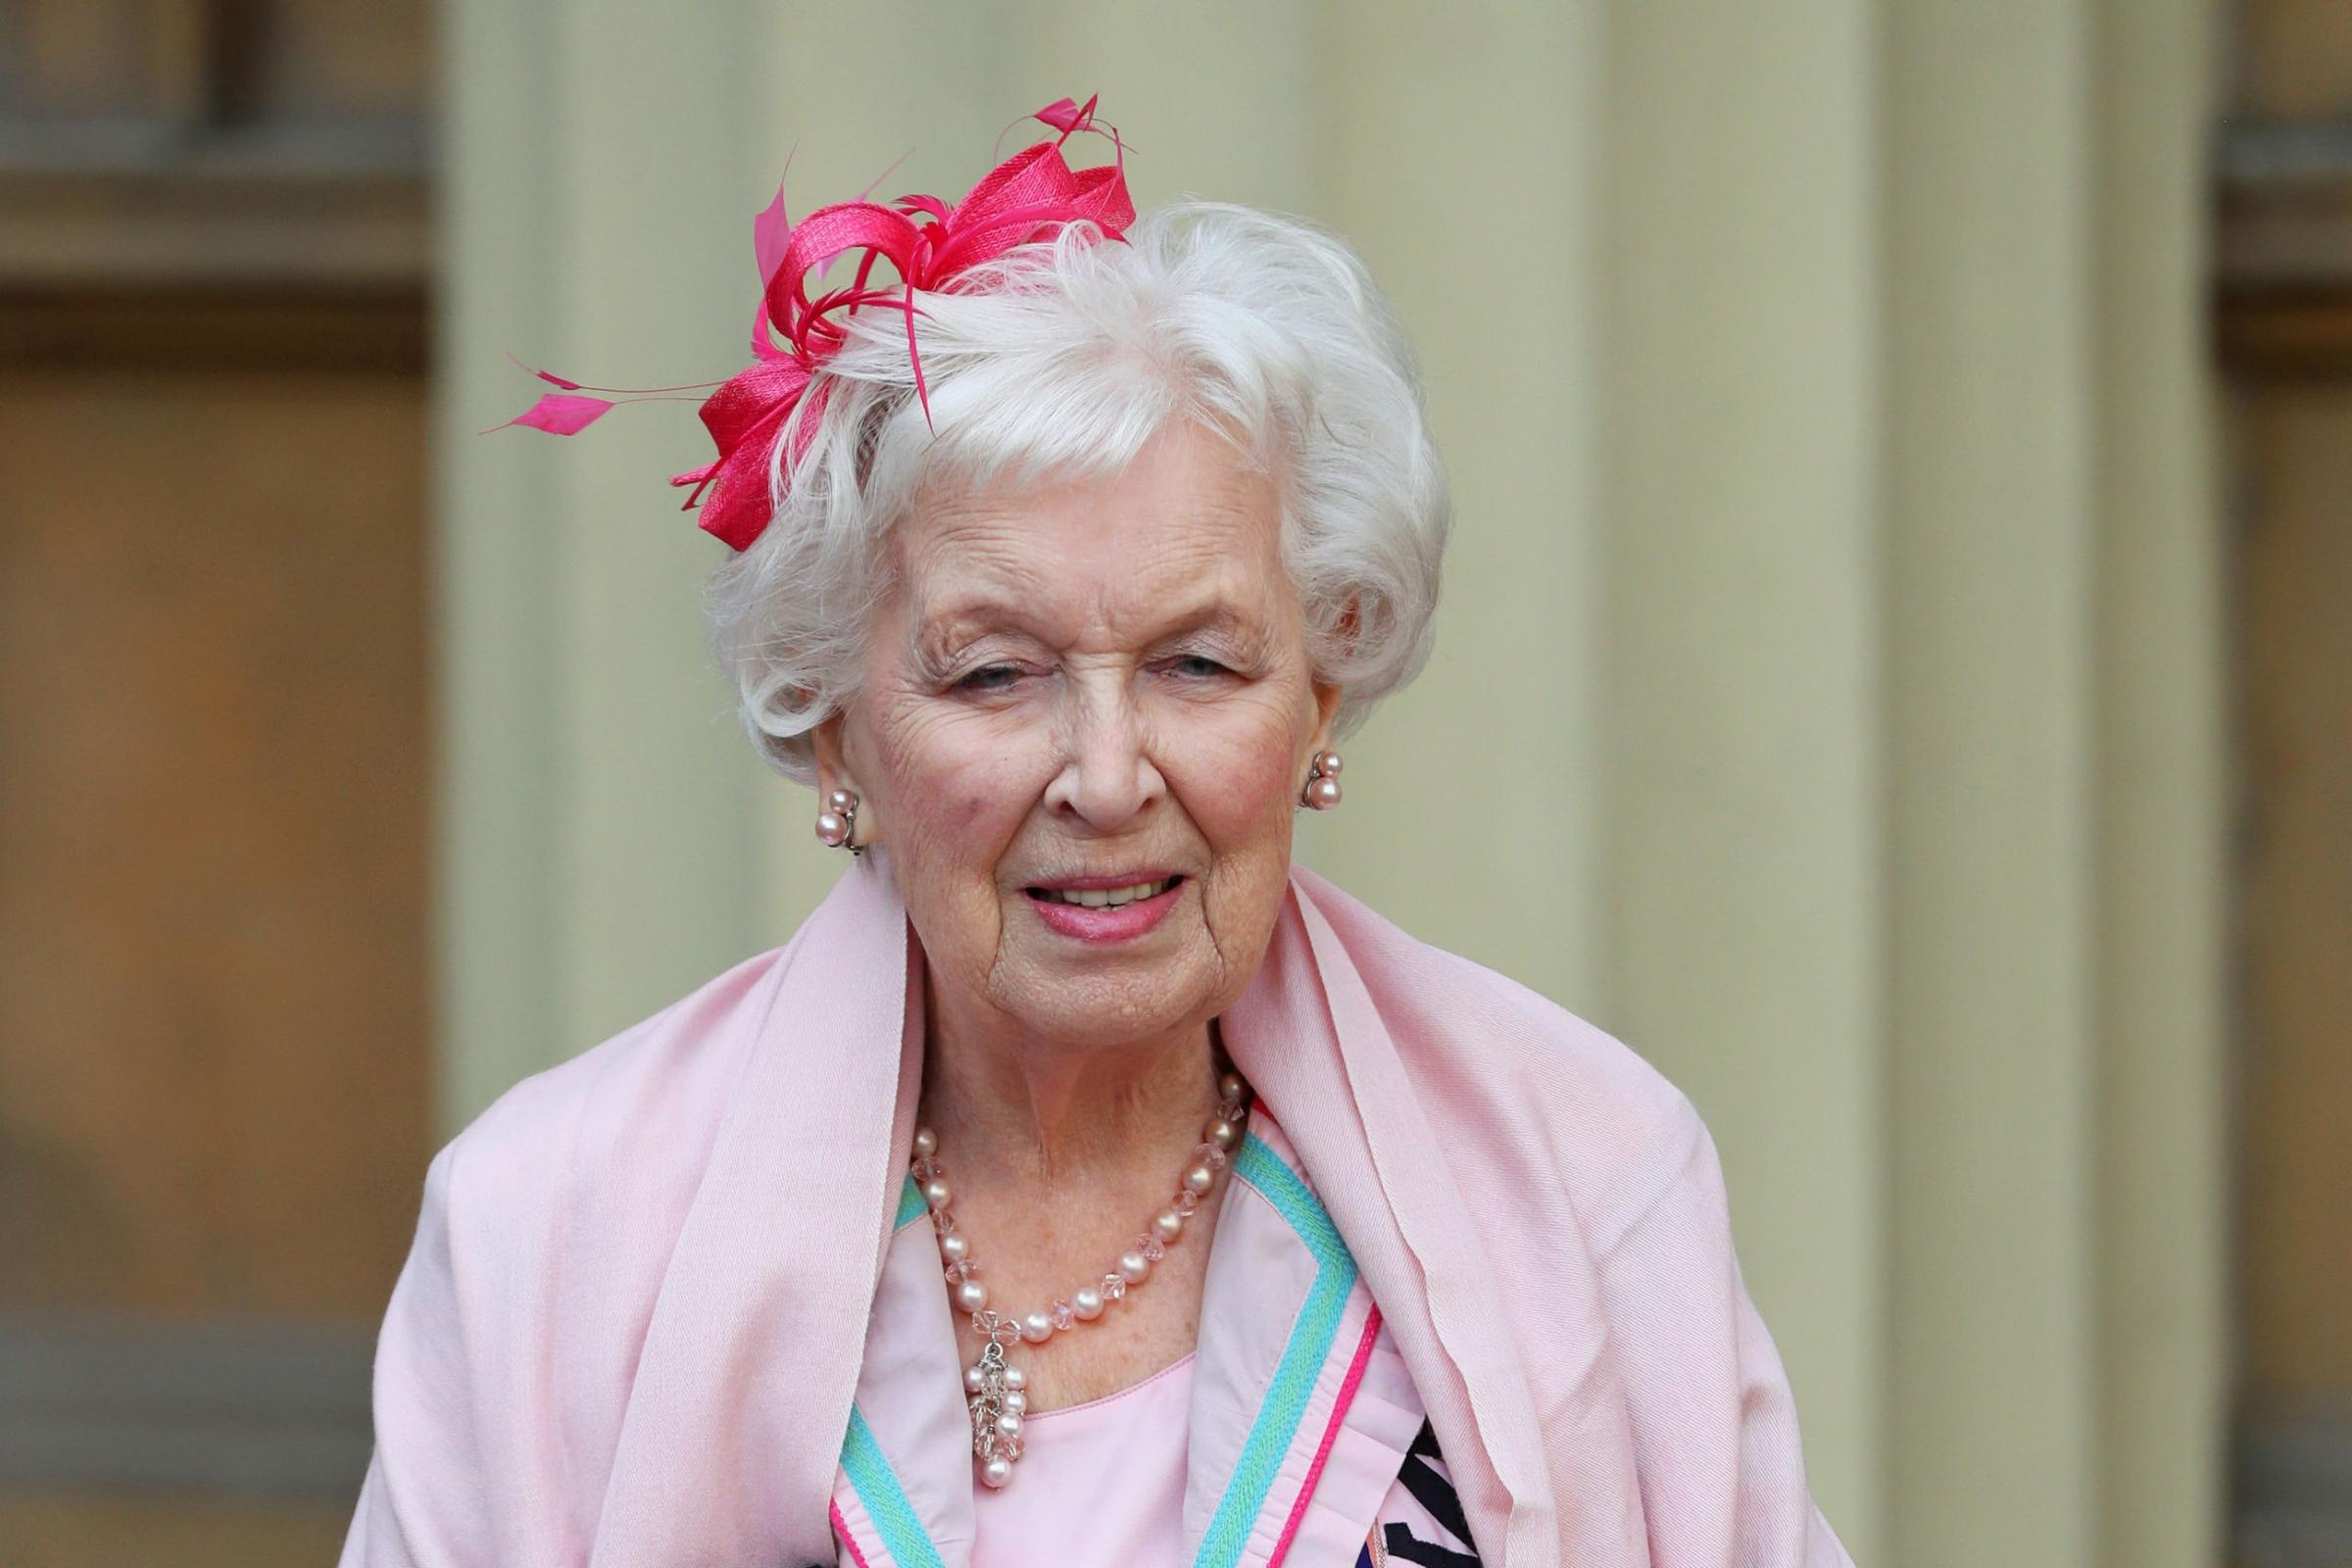 photo June Whitfield (born 1925)